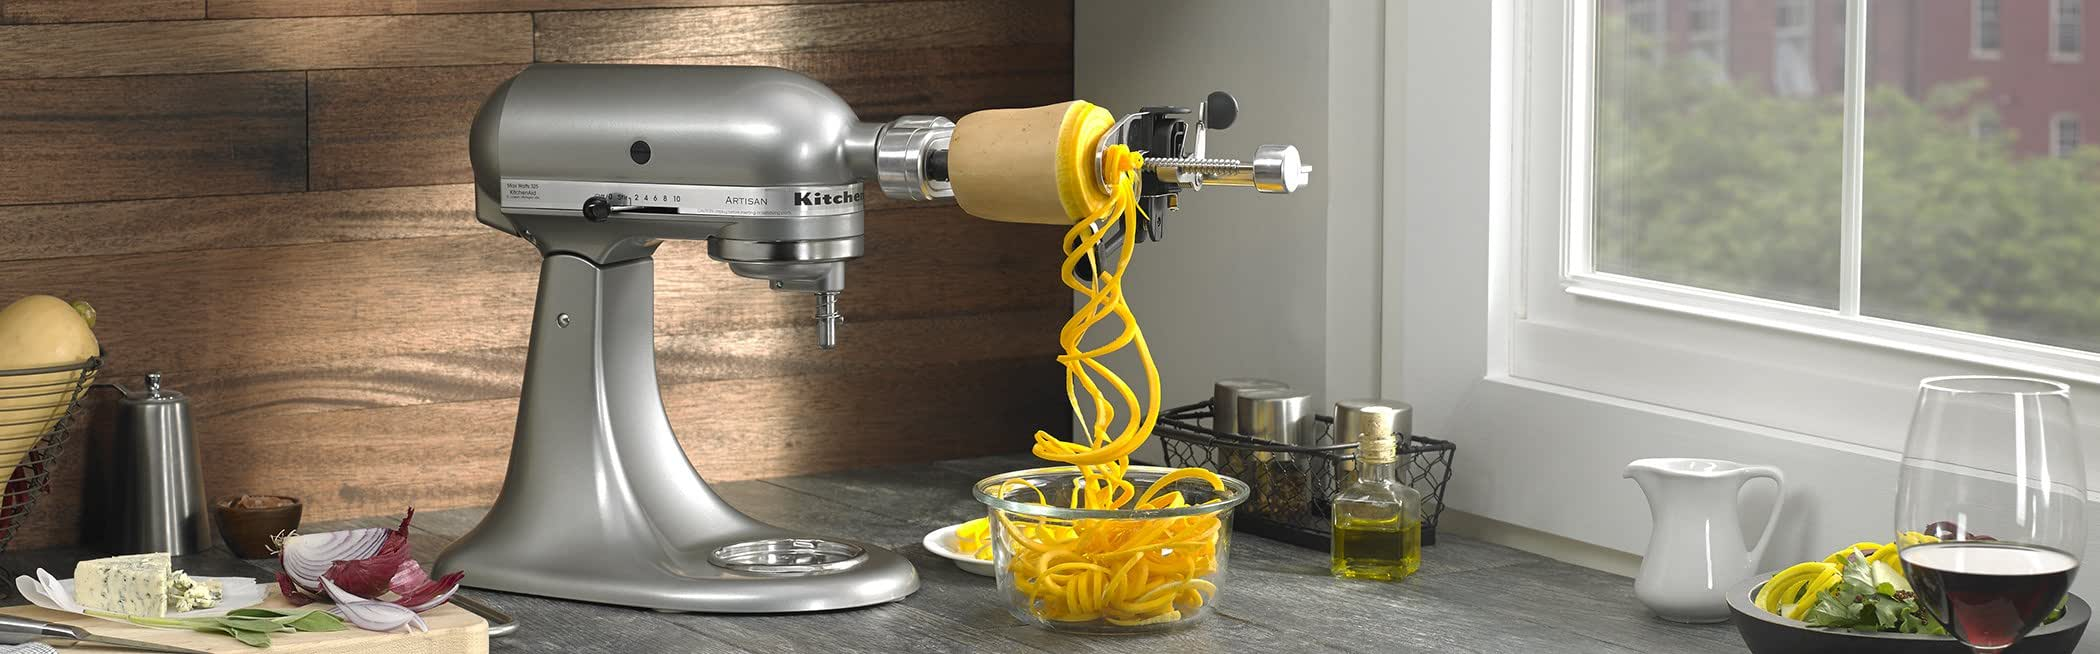 aid attachment attachments paddle hand with wonderful speed for mixer kitchenaid kitchen